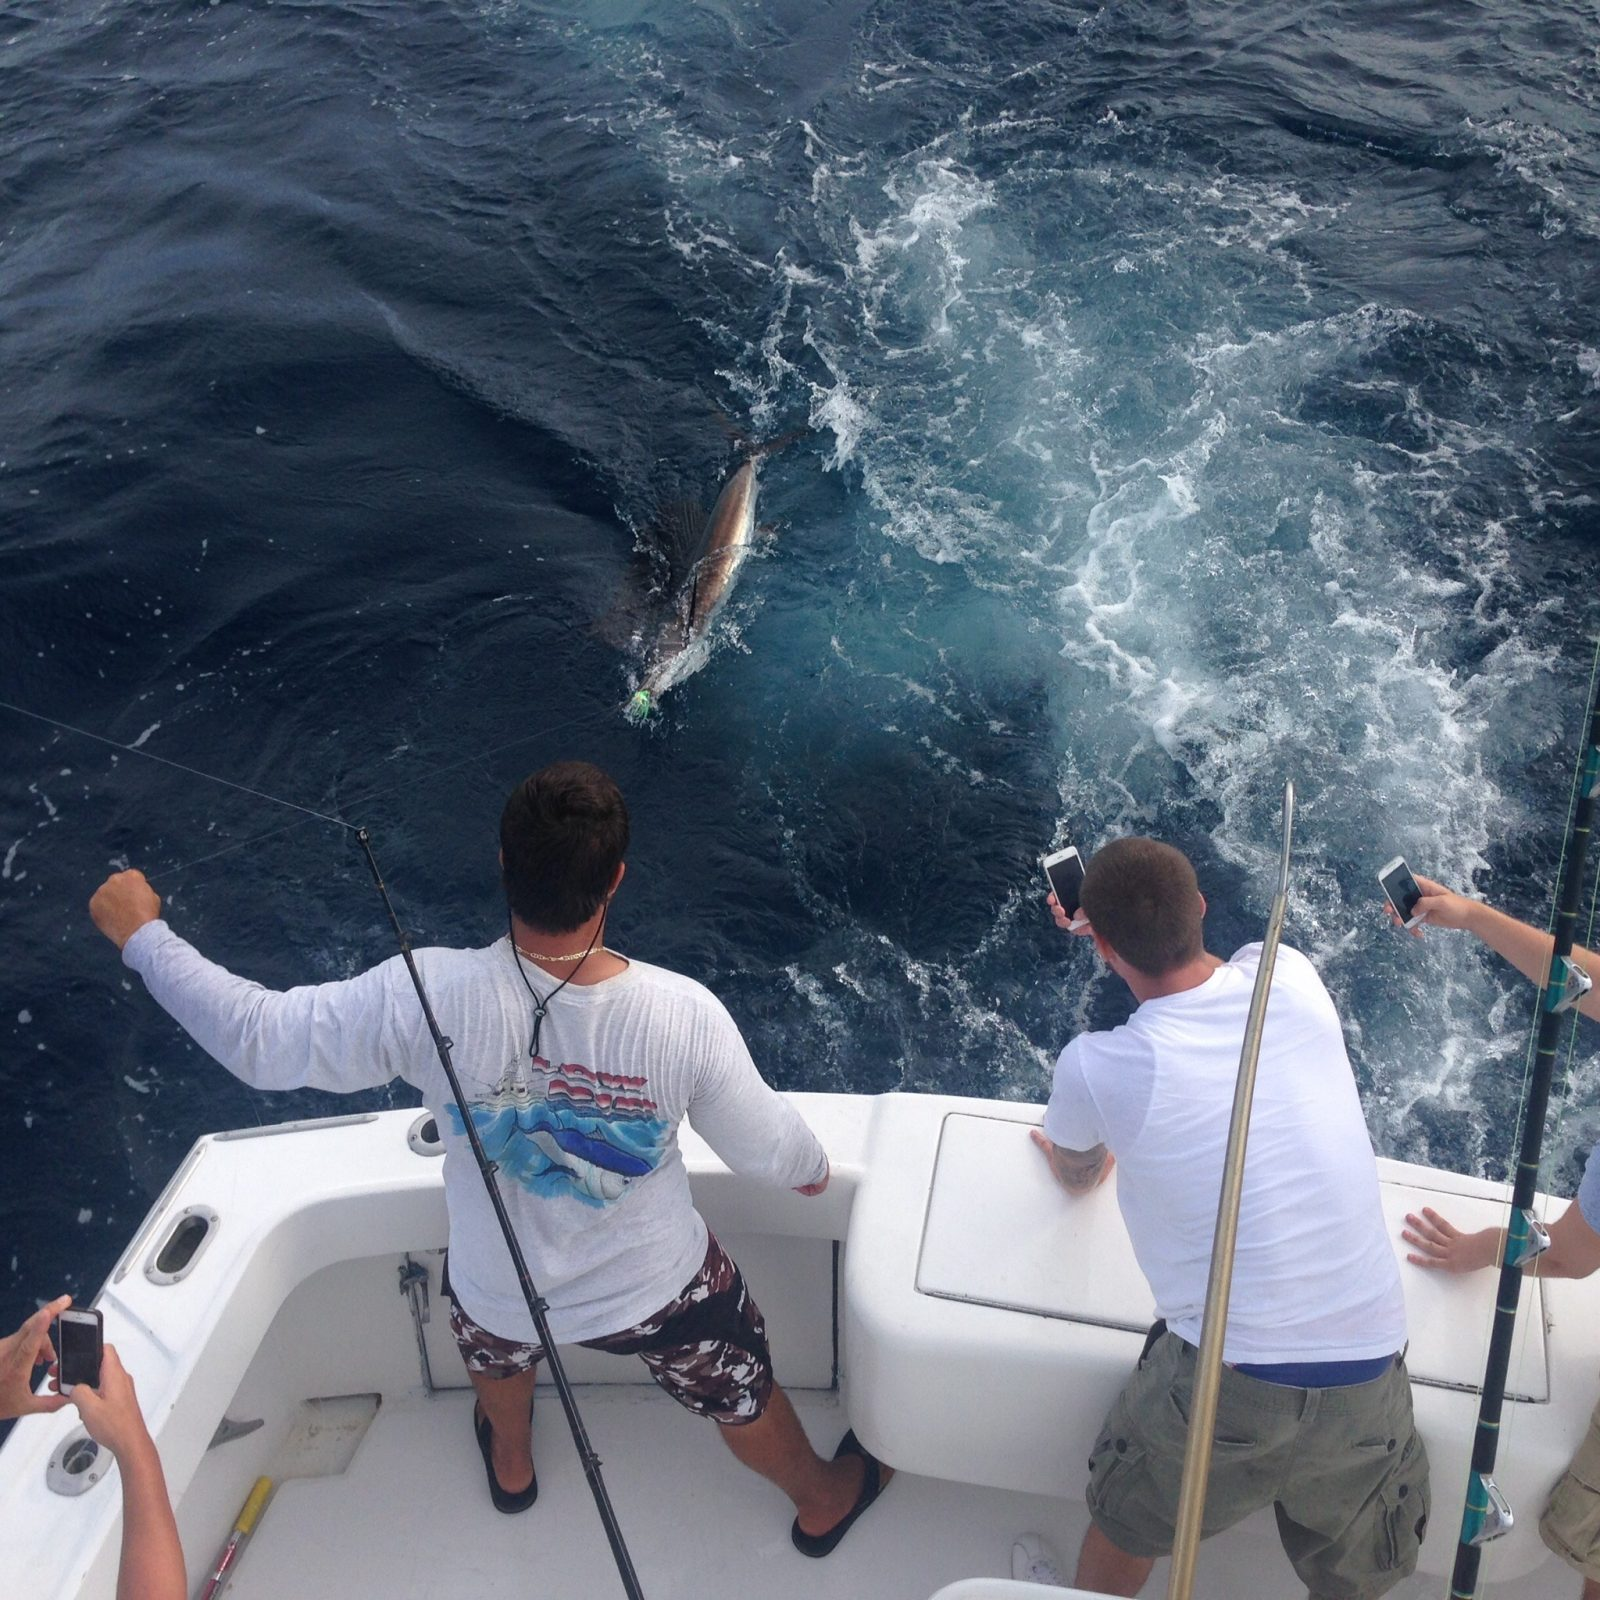 Catching Ted and friends sailfish and Wahoo